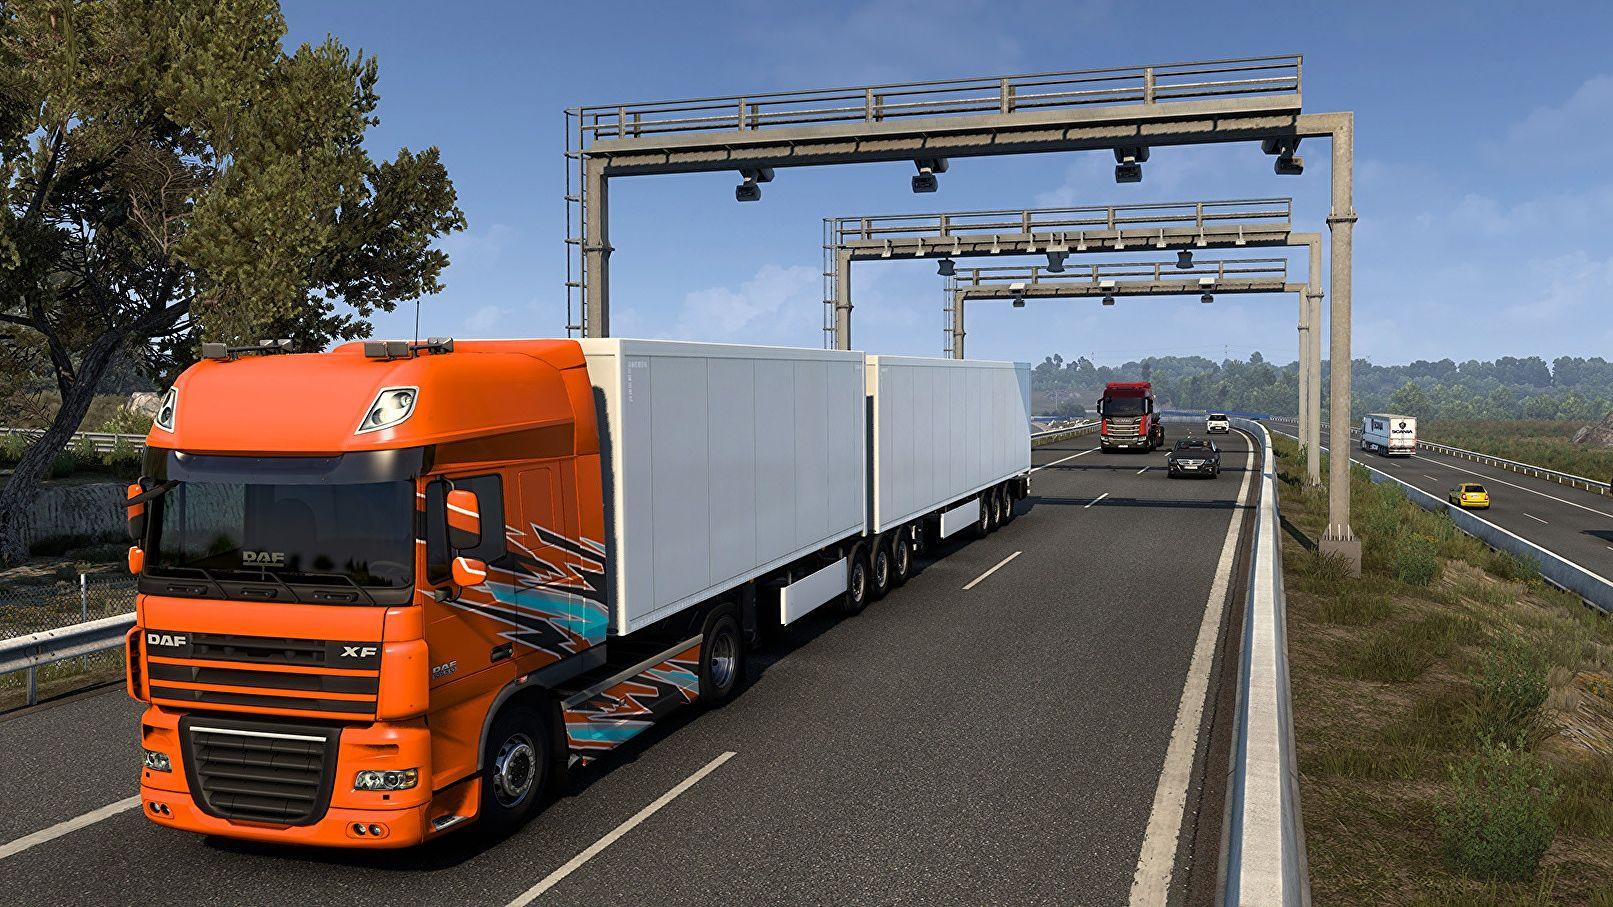 Euro Truck Simulator 2's Iberian DLC is out now